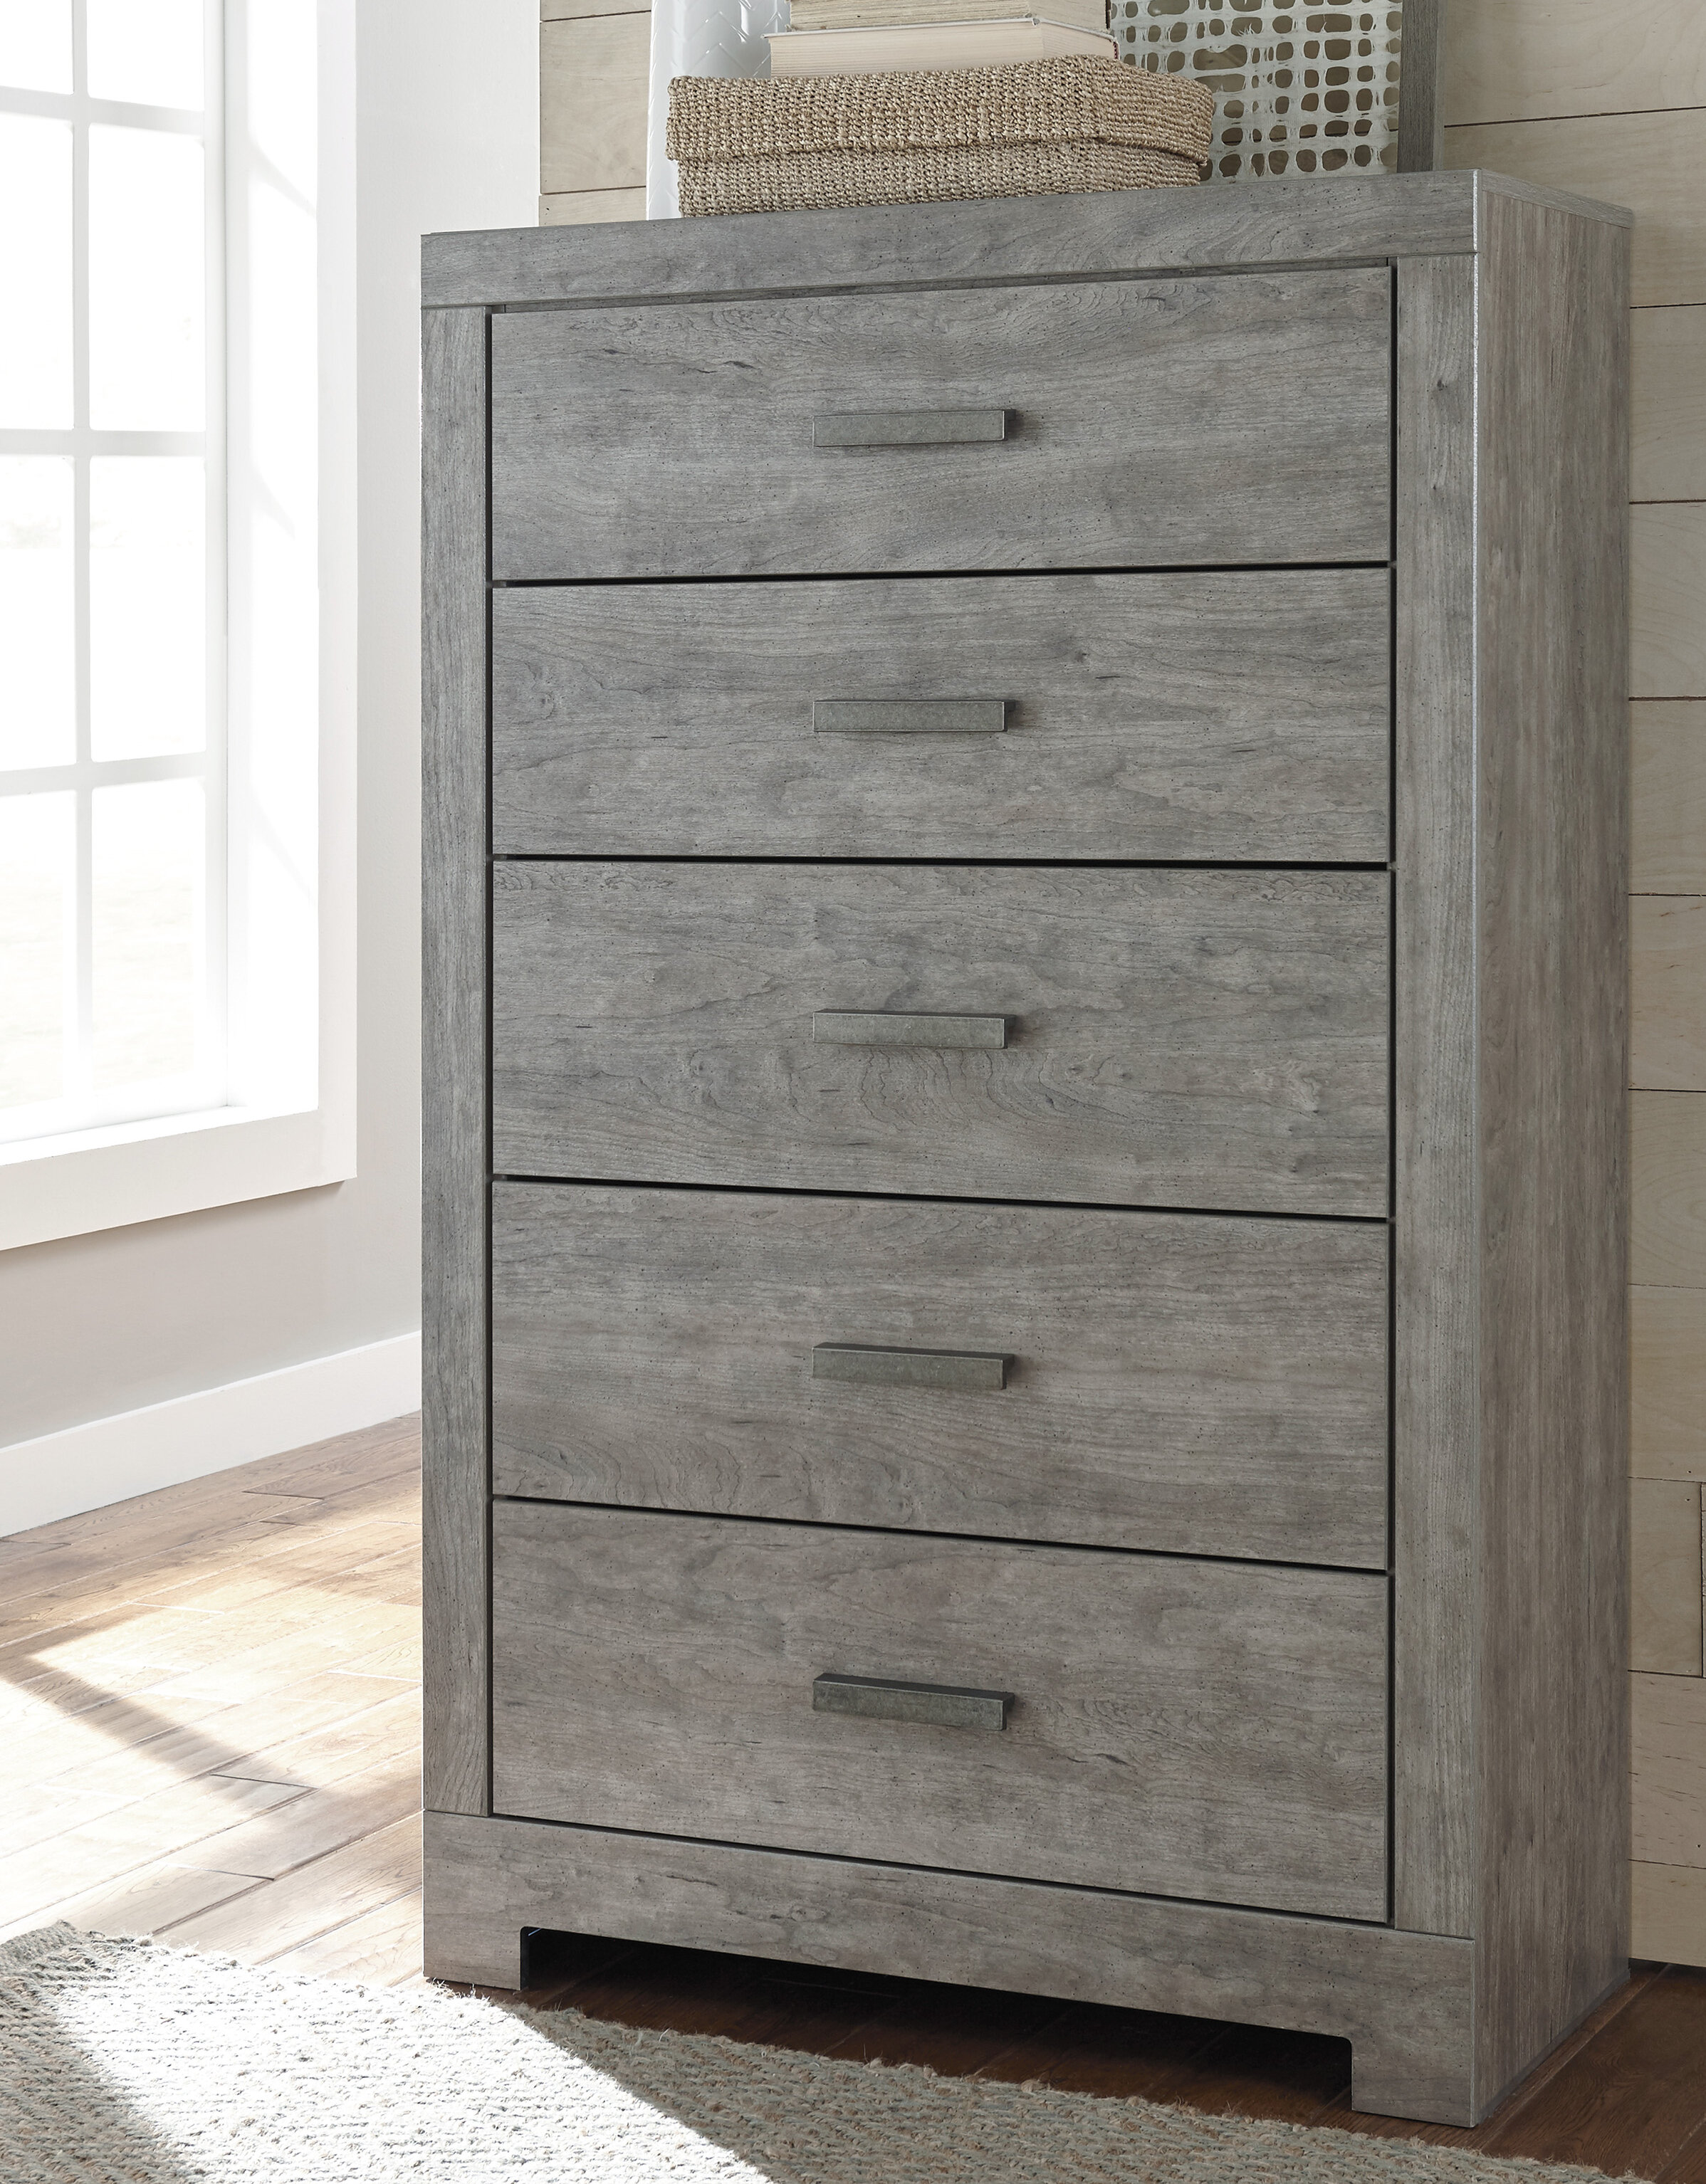 josep naturally distressed simply homes collection weathered wood furniture dresser by design rooms